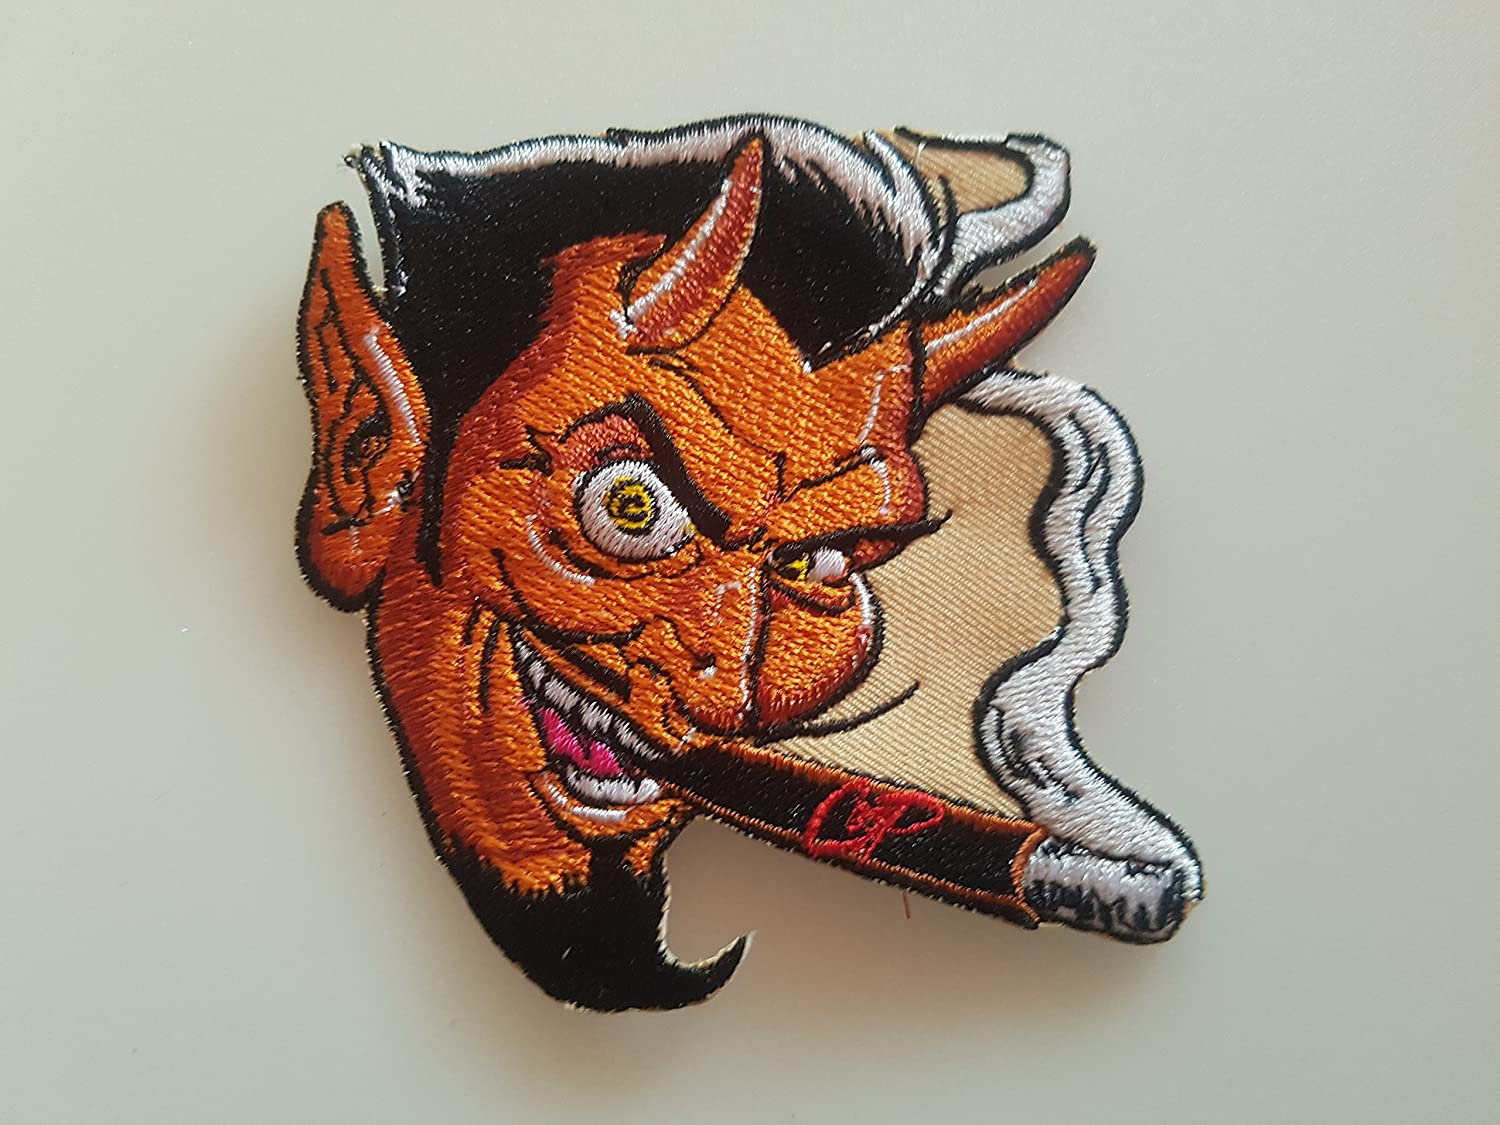 10/ x 10/ cm Complete # 117/ Mr Coop Size Approx Embroidered Patch Aplication Eccuson Hot Rod.